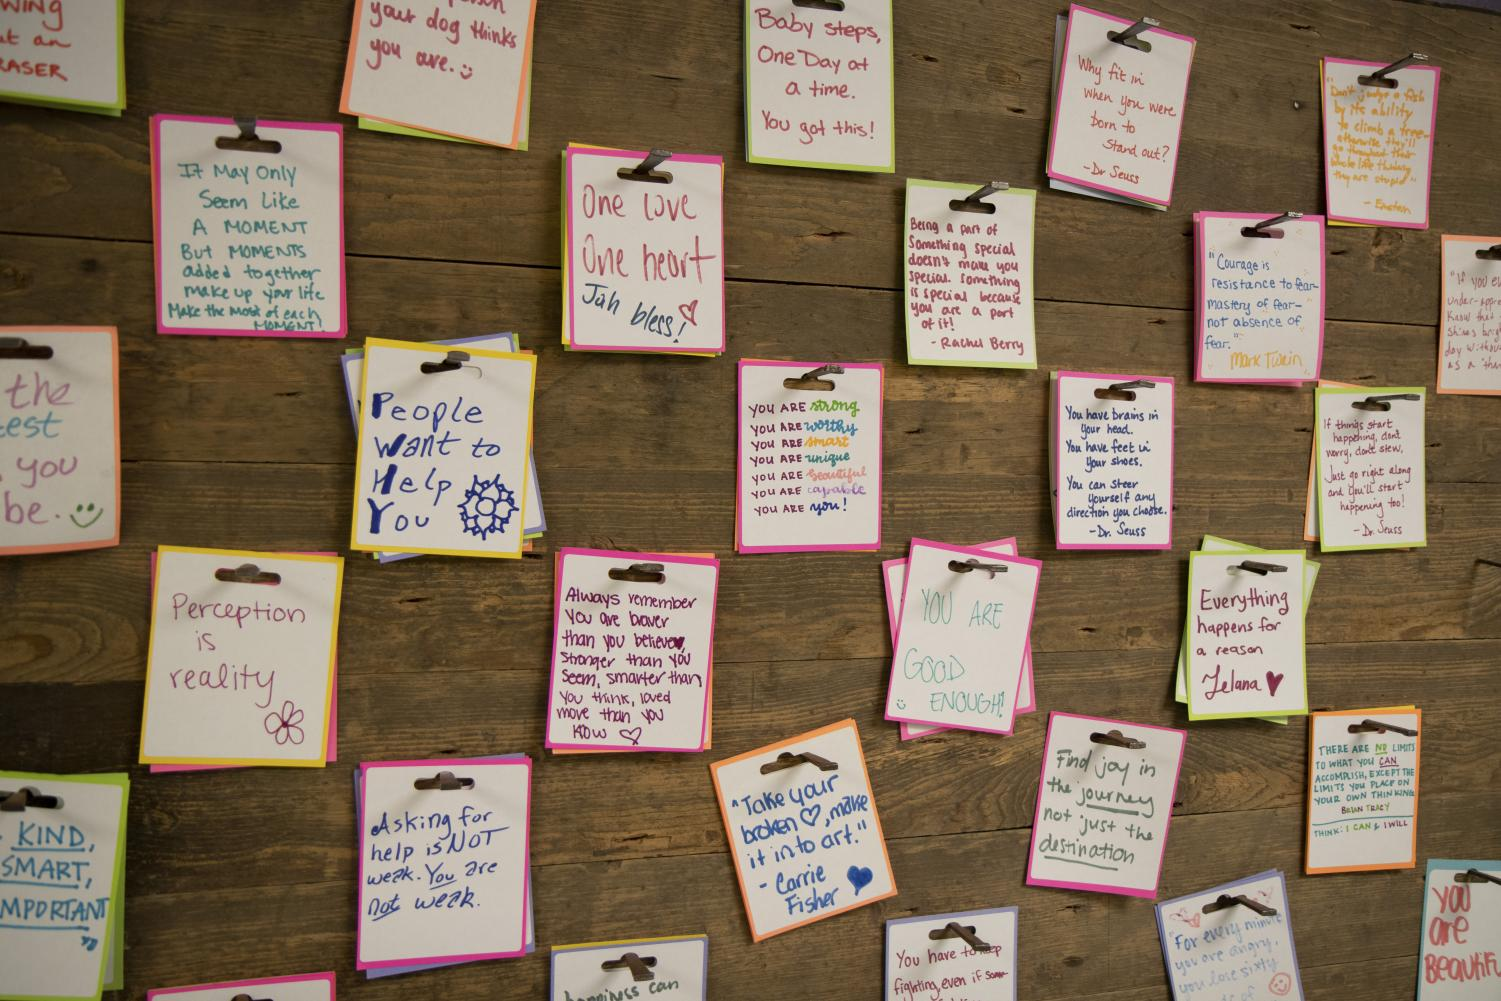 A wall of notes promote motivational sayings to keep students going.